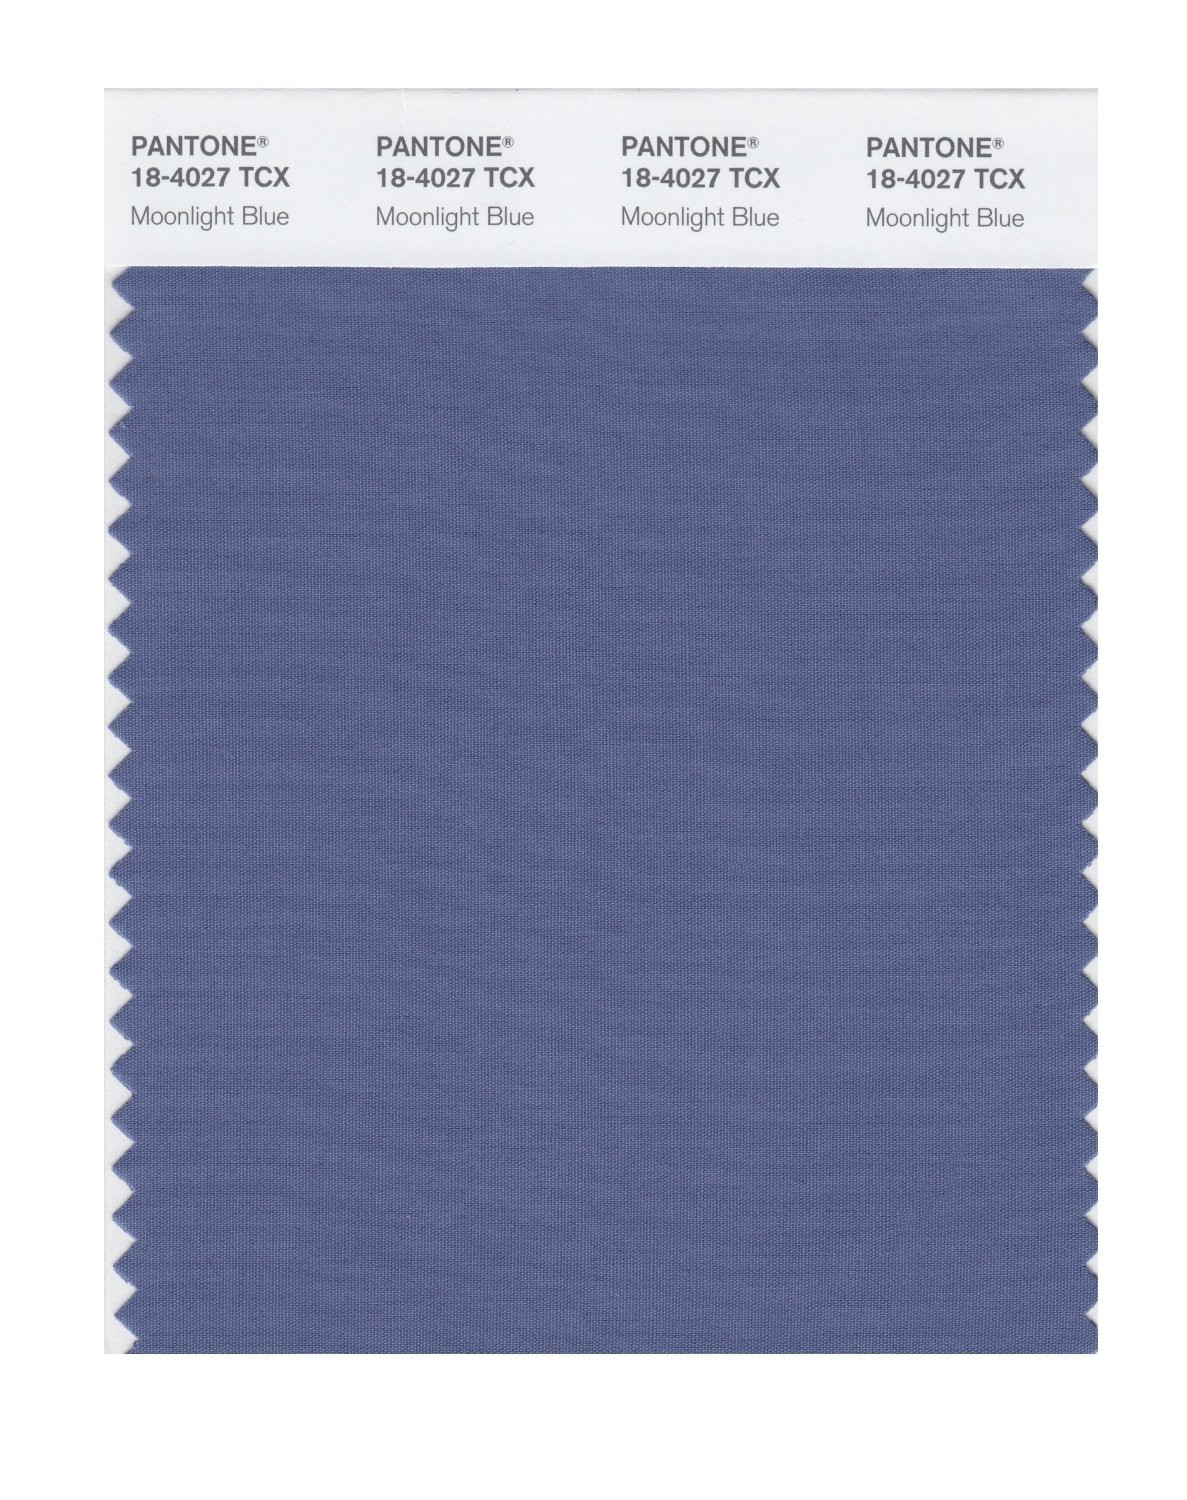 Pantone 18-4027 TCX Swatch Card Moonlight Blue